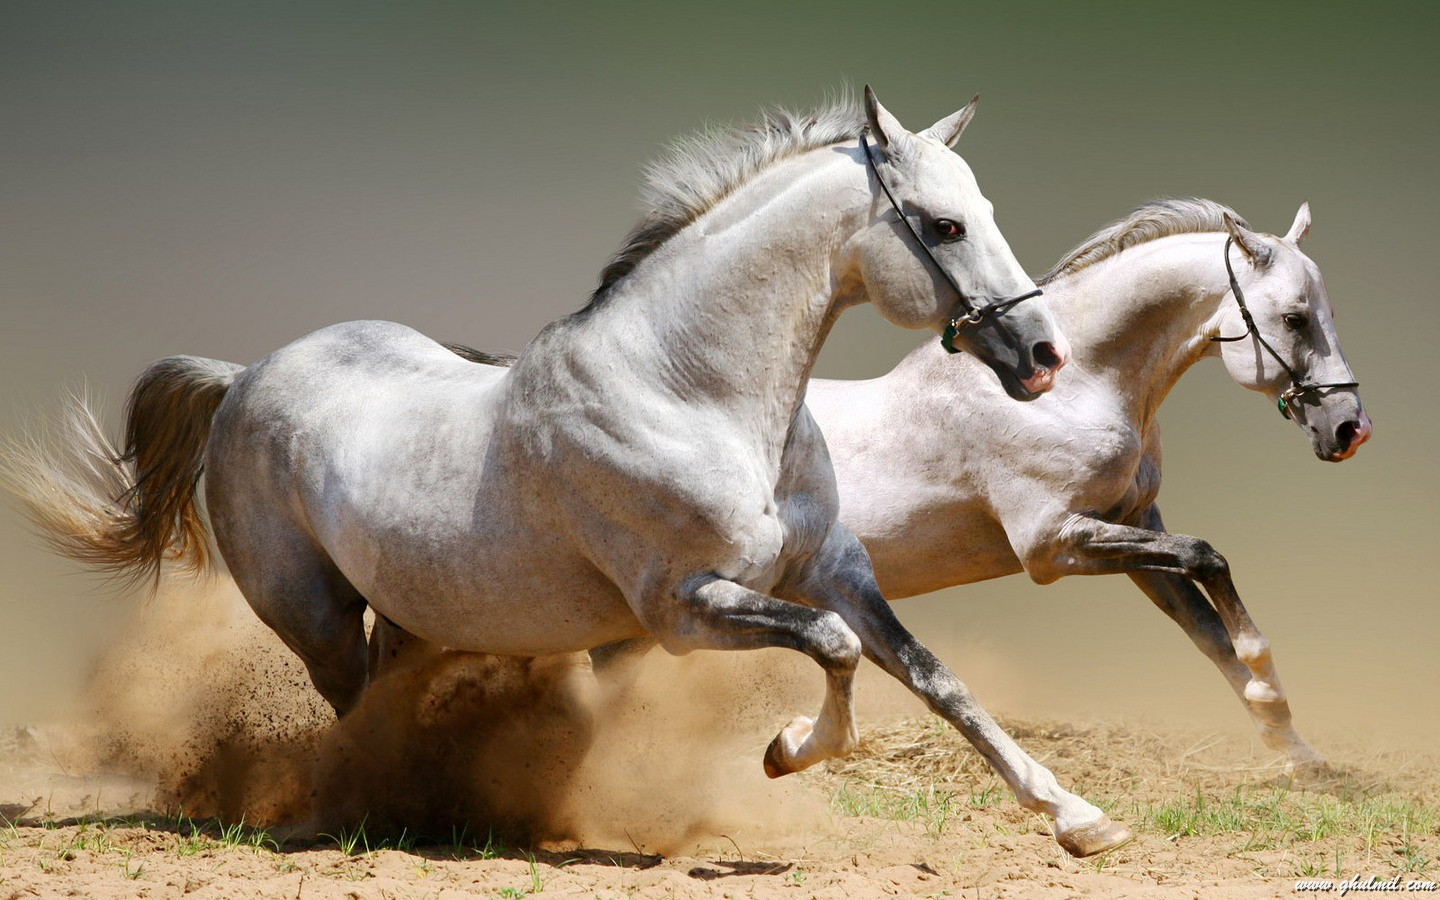 Horse amazing facts new pictures the wildlife - Arabian horse pictures ...